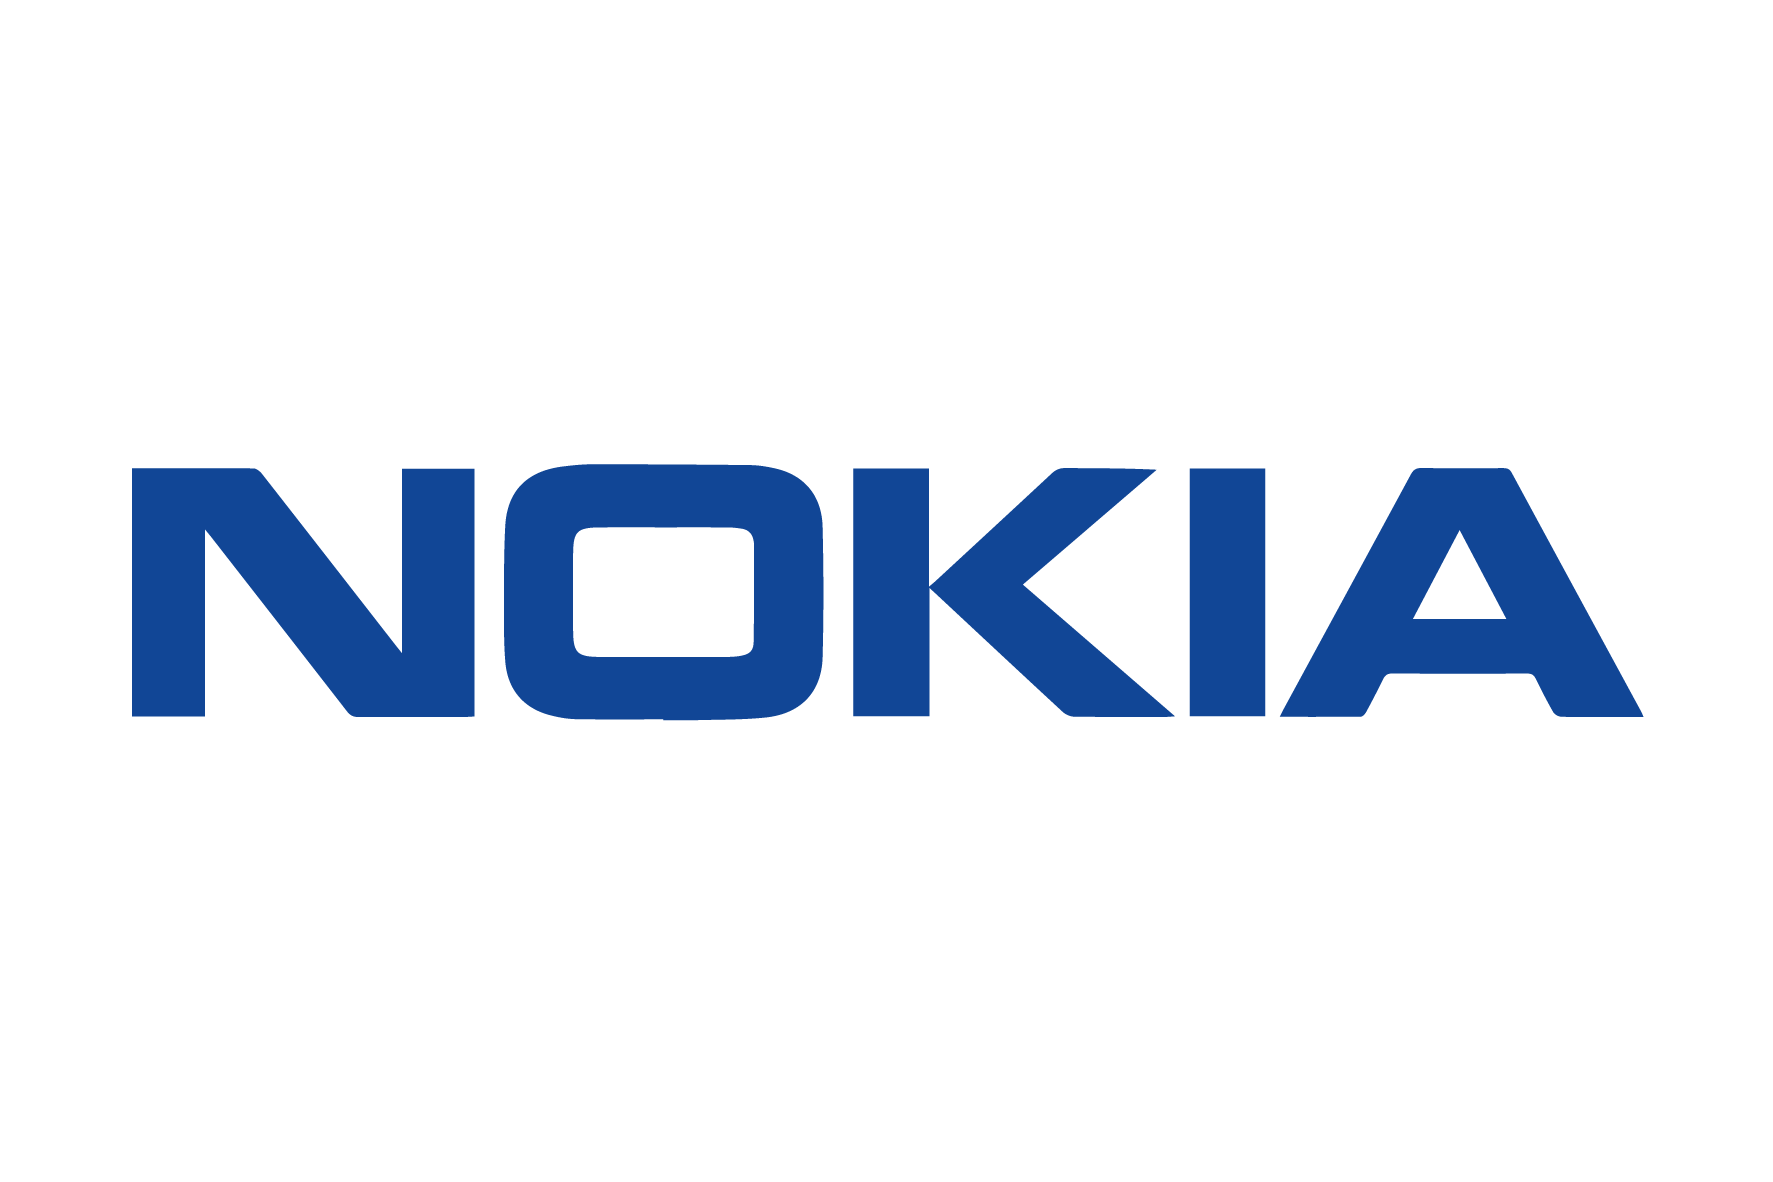 LFM group logo nokia